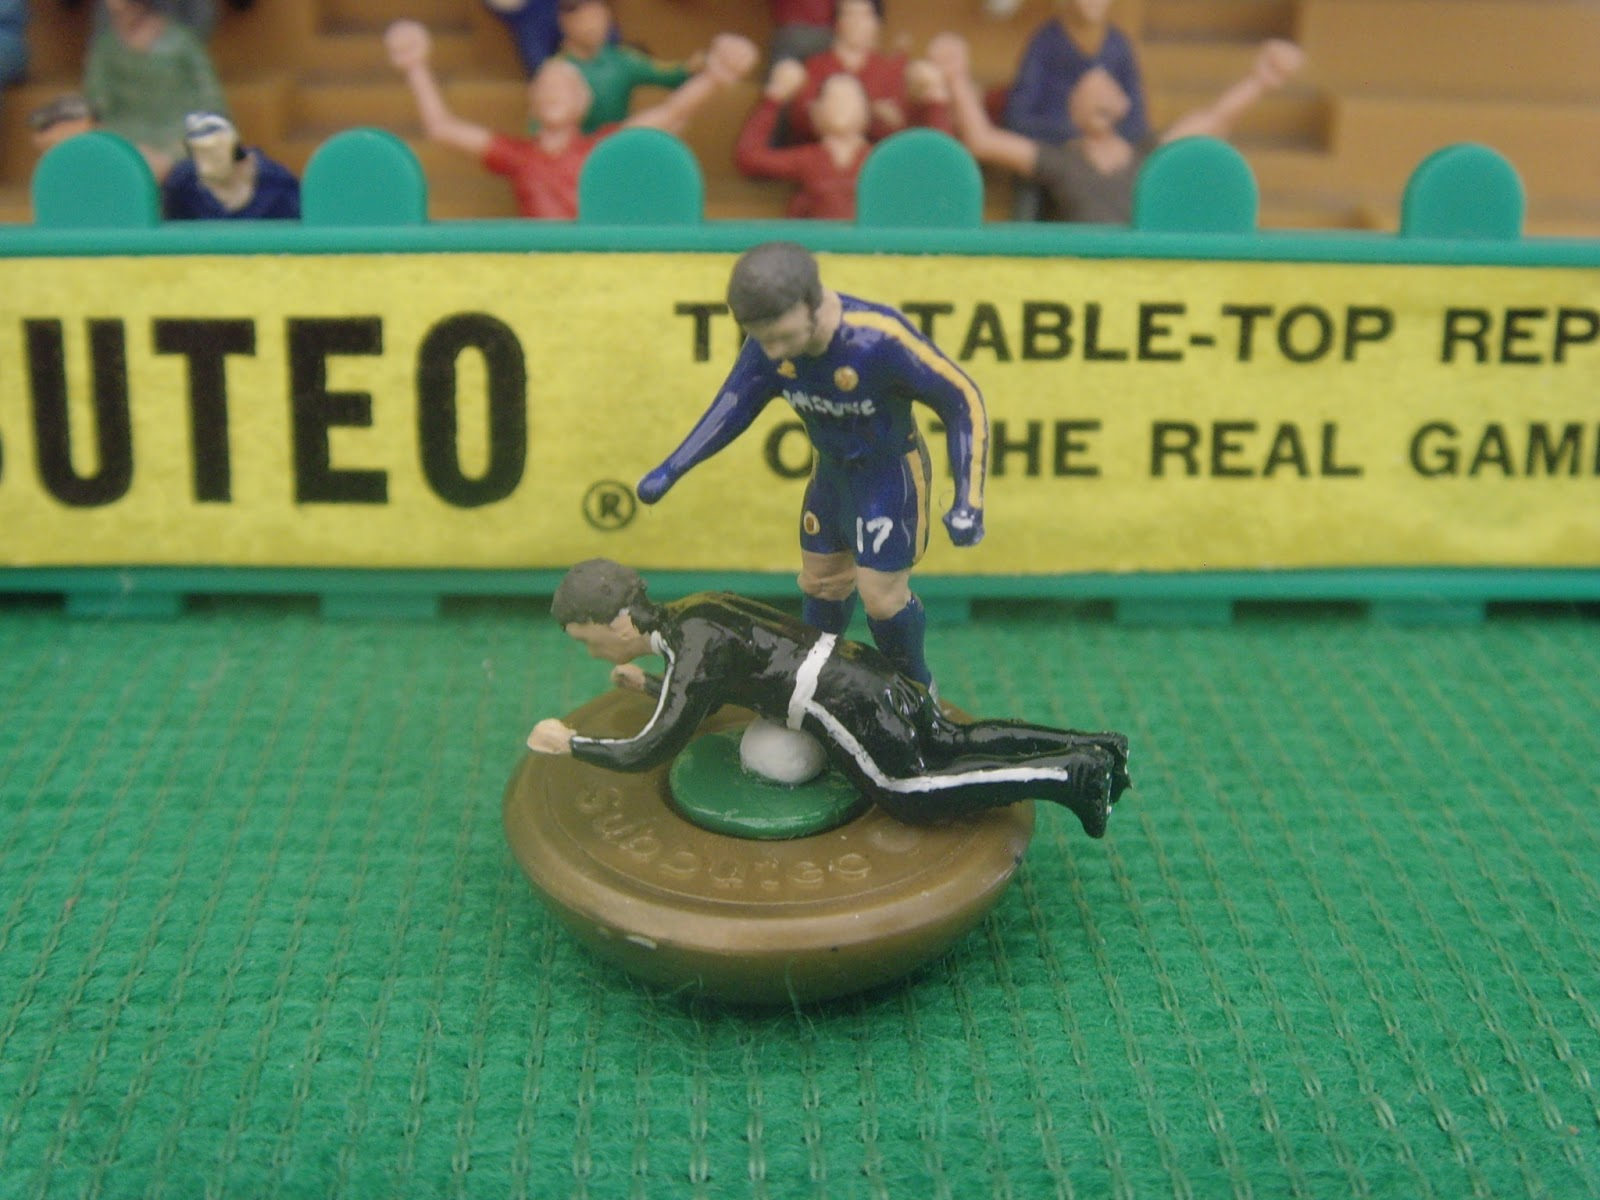 Eden Hazard's ballboy incident given Subbuteo treatment